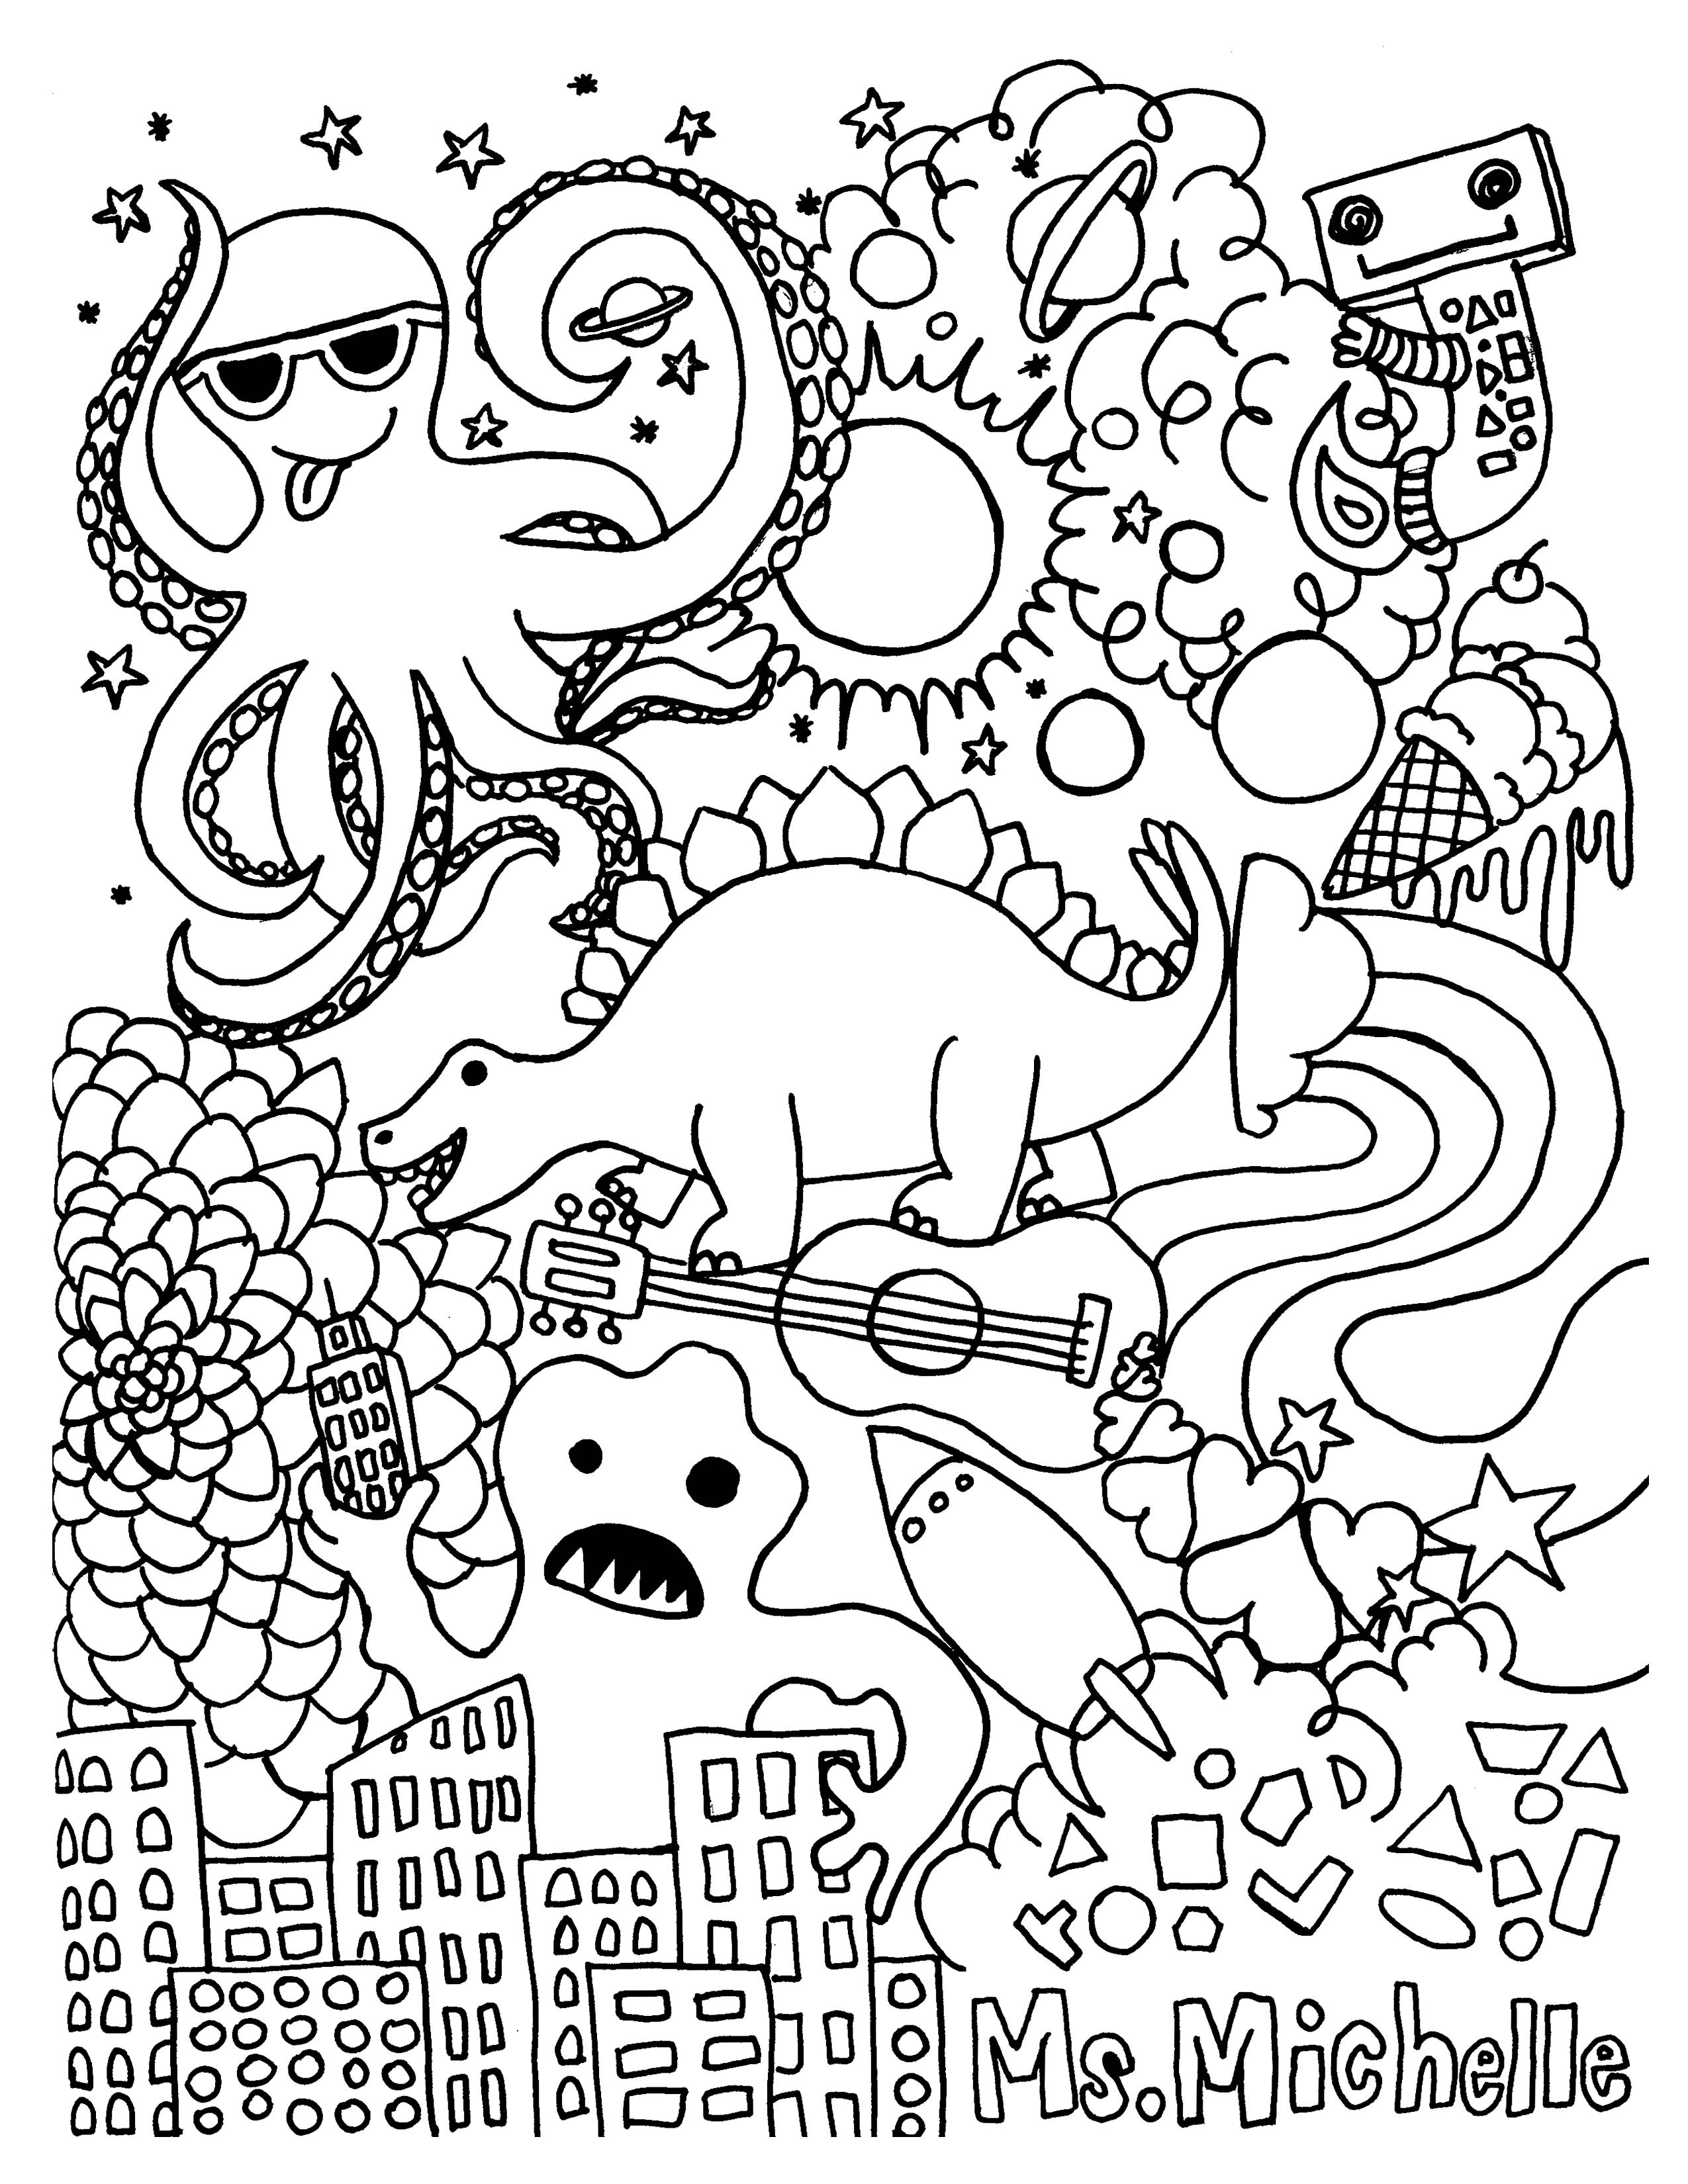 1st grade coloring pages Download-2nd Grade Coloring Pages Kids Free Printable Books for First Grade St Grade Coloring Printable 2-i